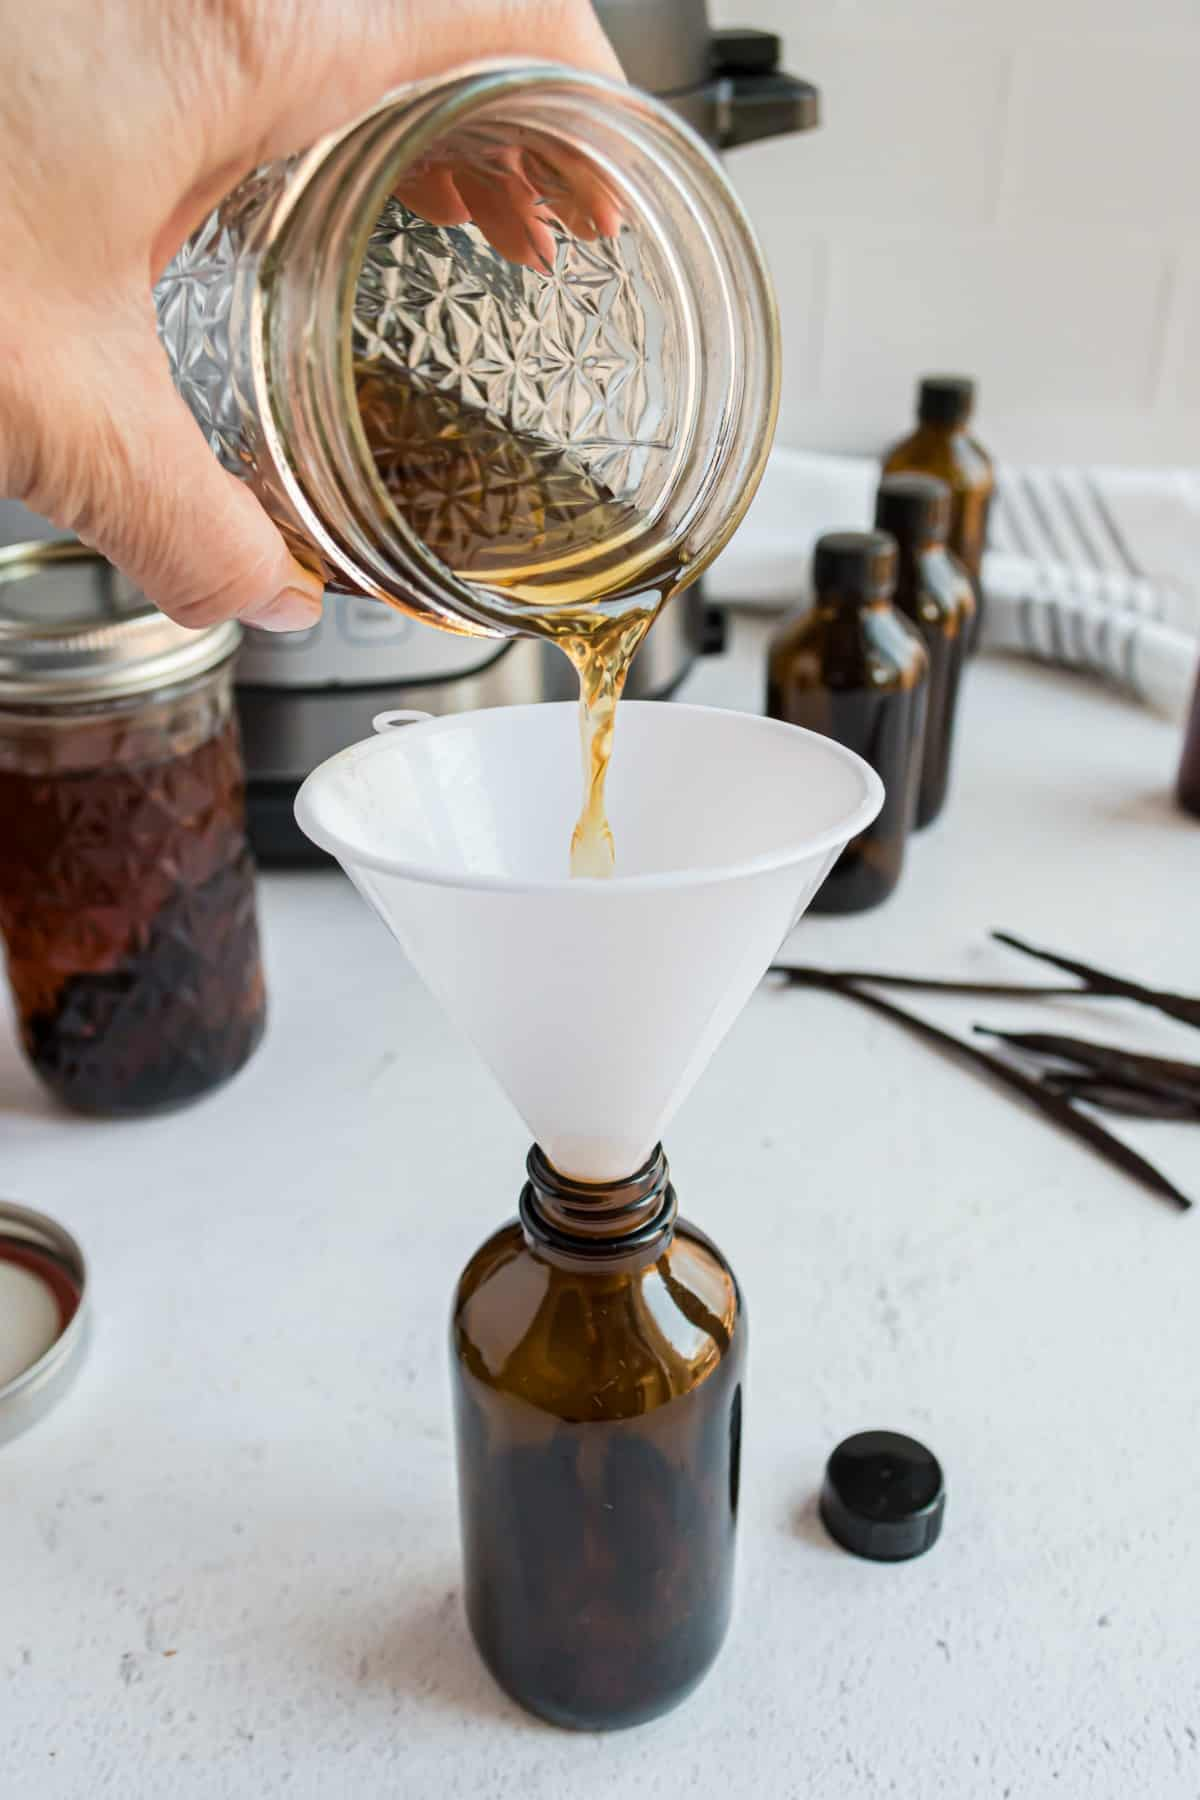 Pouring homemade vanilla extract into glass bottles.